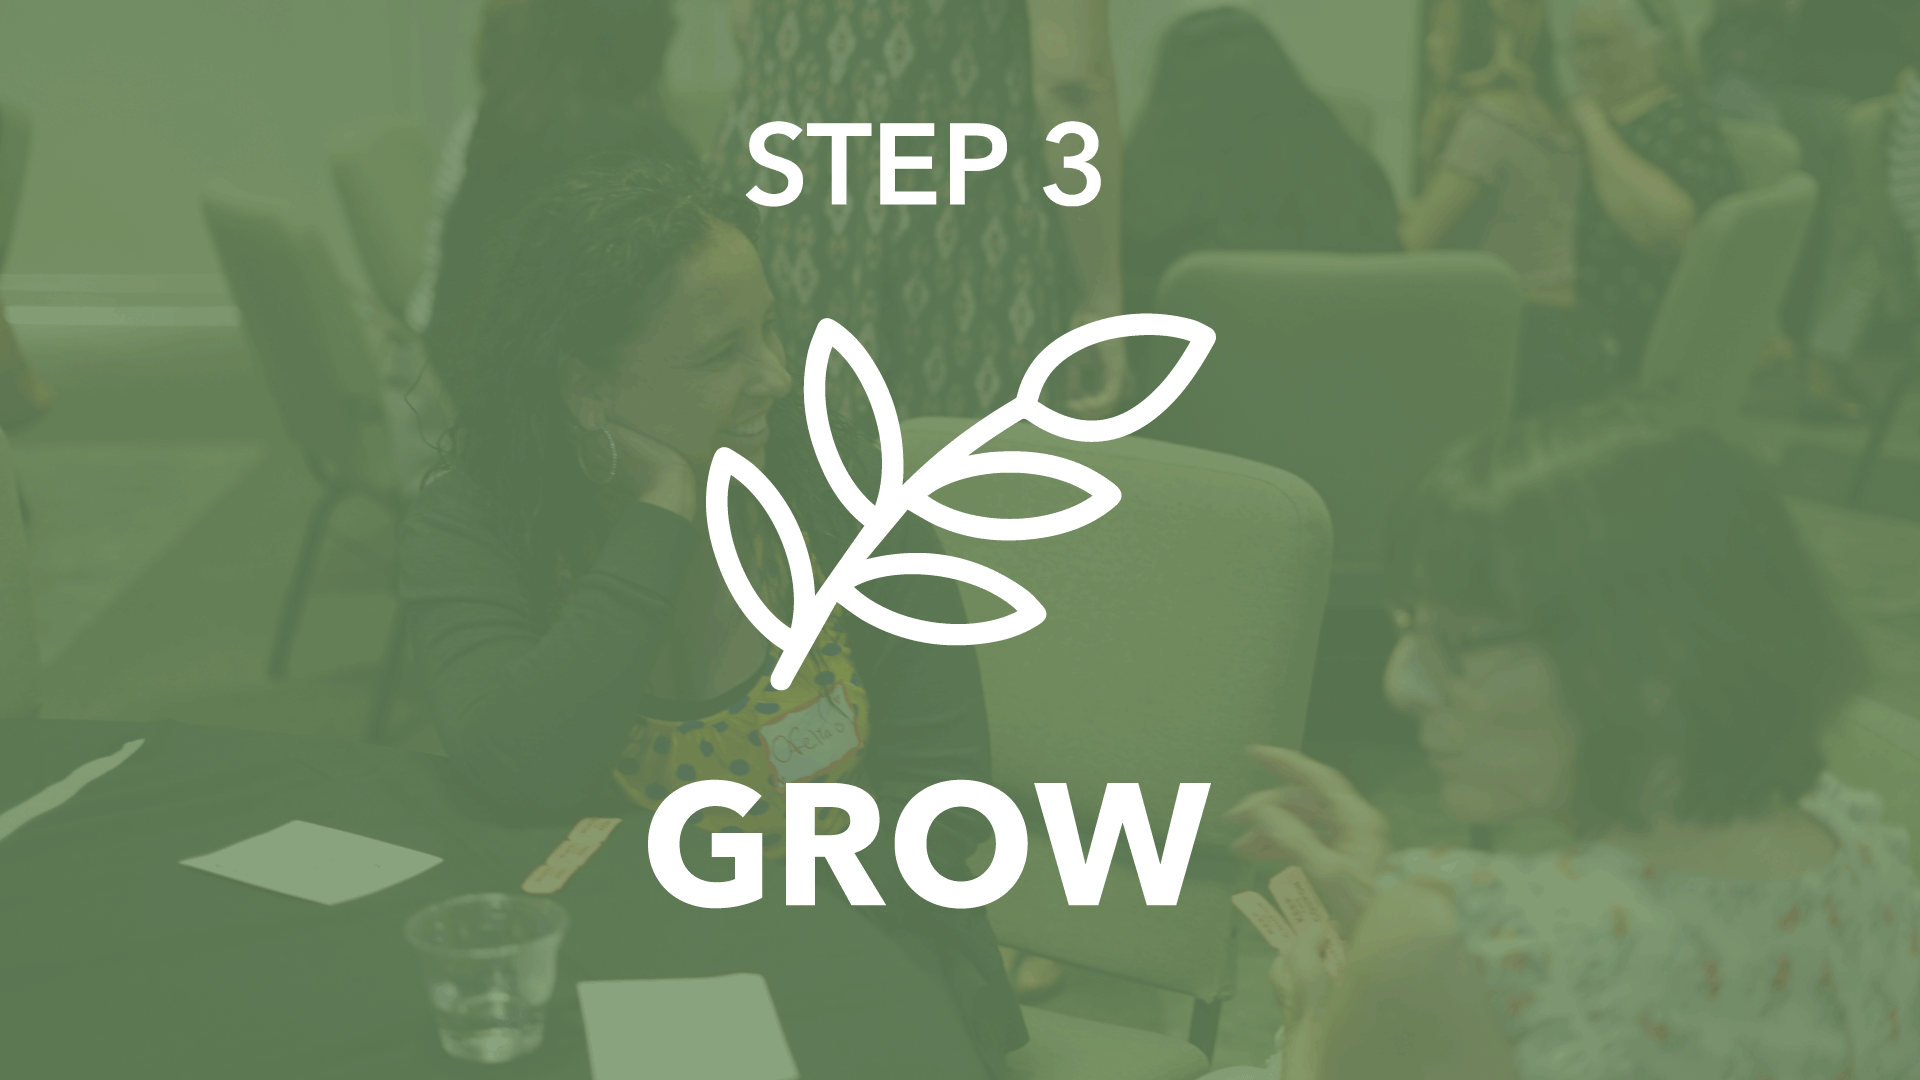 Learn essential habits that will help you  GROW strong  into a fully functioning follower of Jesus - one who lives a transformed life, develops a deeper relationship with Christ, and becomes spiritually healthy and mature.   Step 3 meets the 3rd Sunday of each month